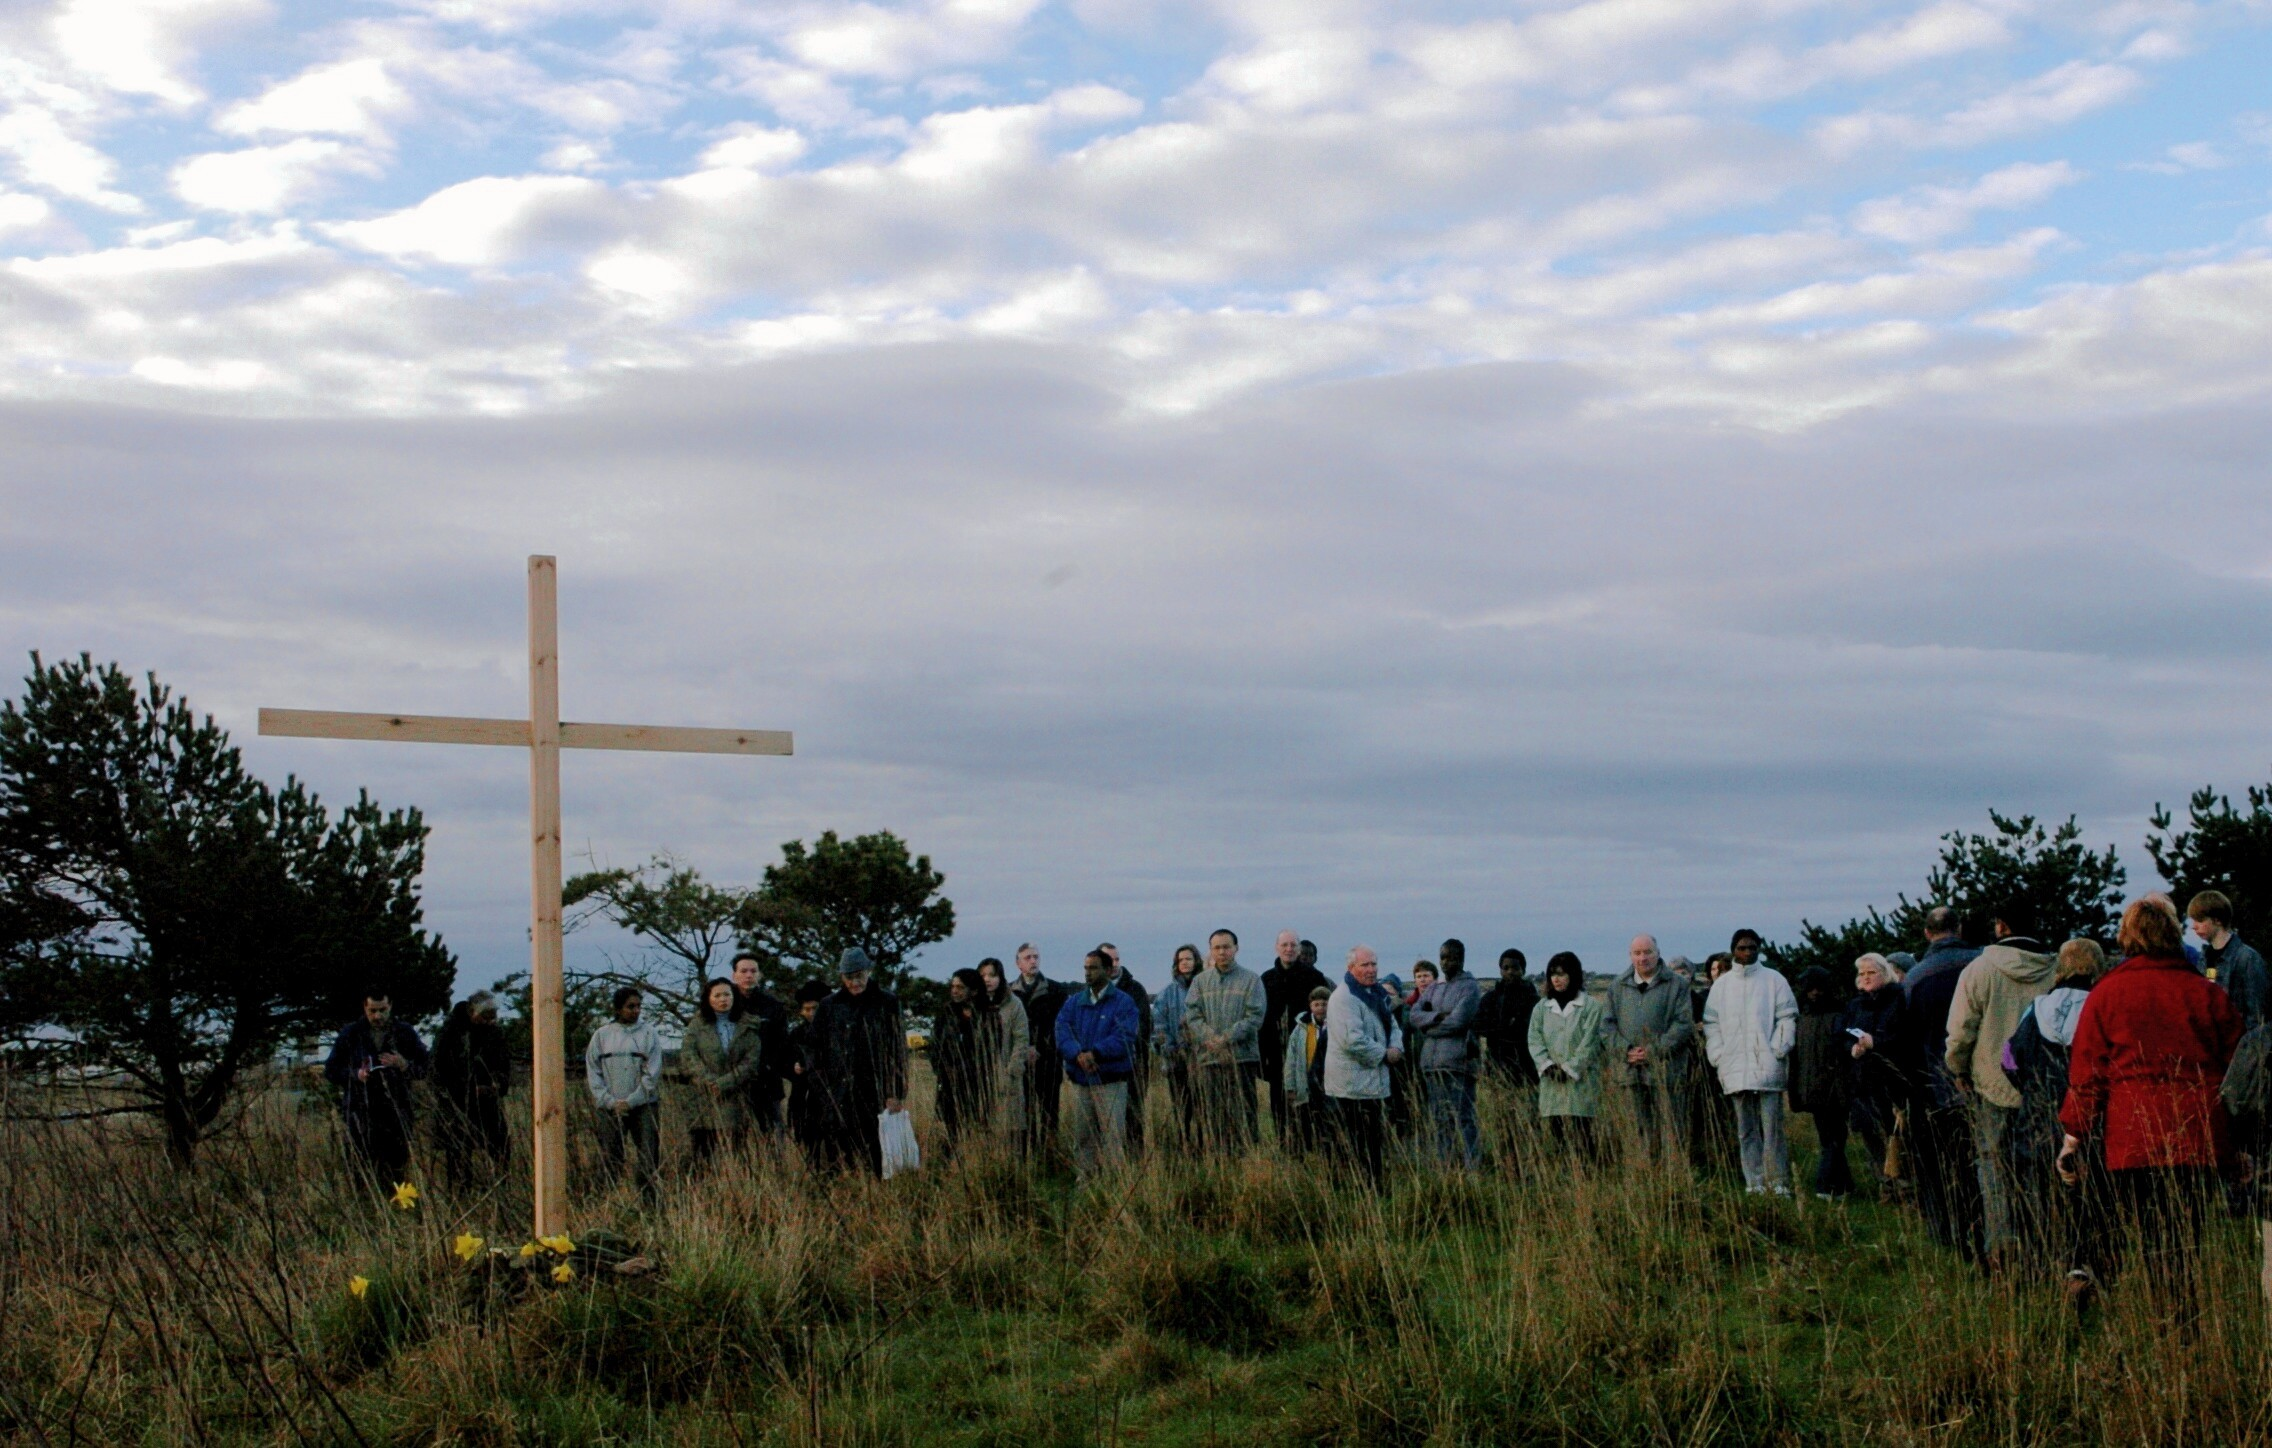 pilgrimage: The Easter Cross was carried from St Mary's Cathedral in the city to Kincorth led by Deacon Brian Kilkerr.